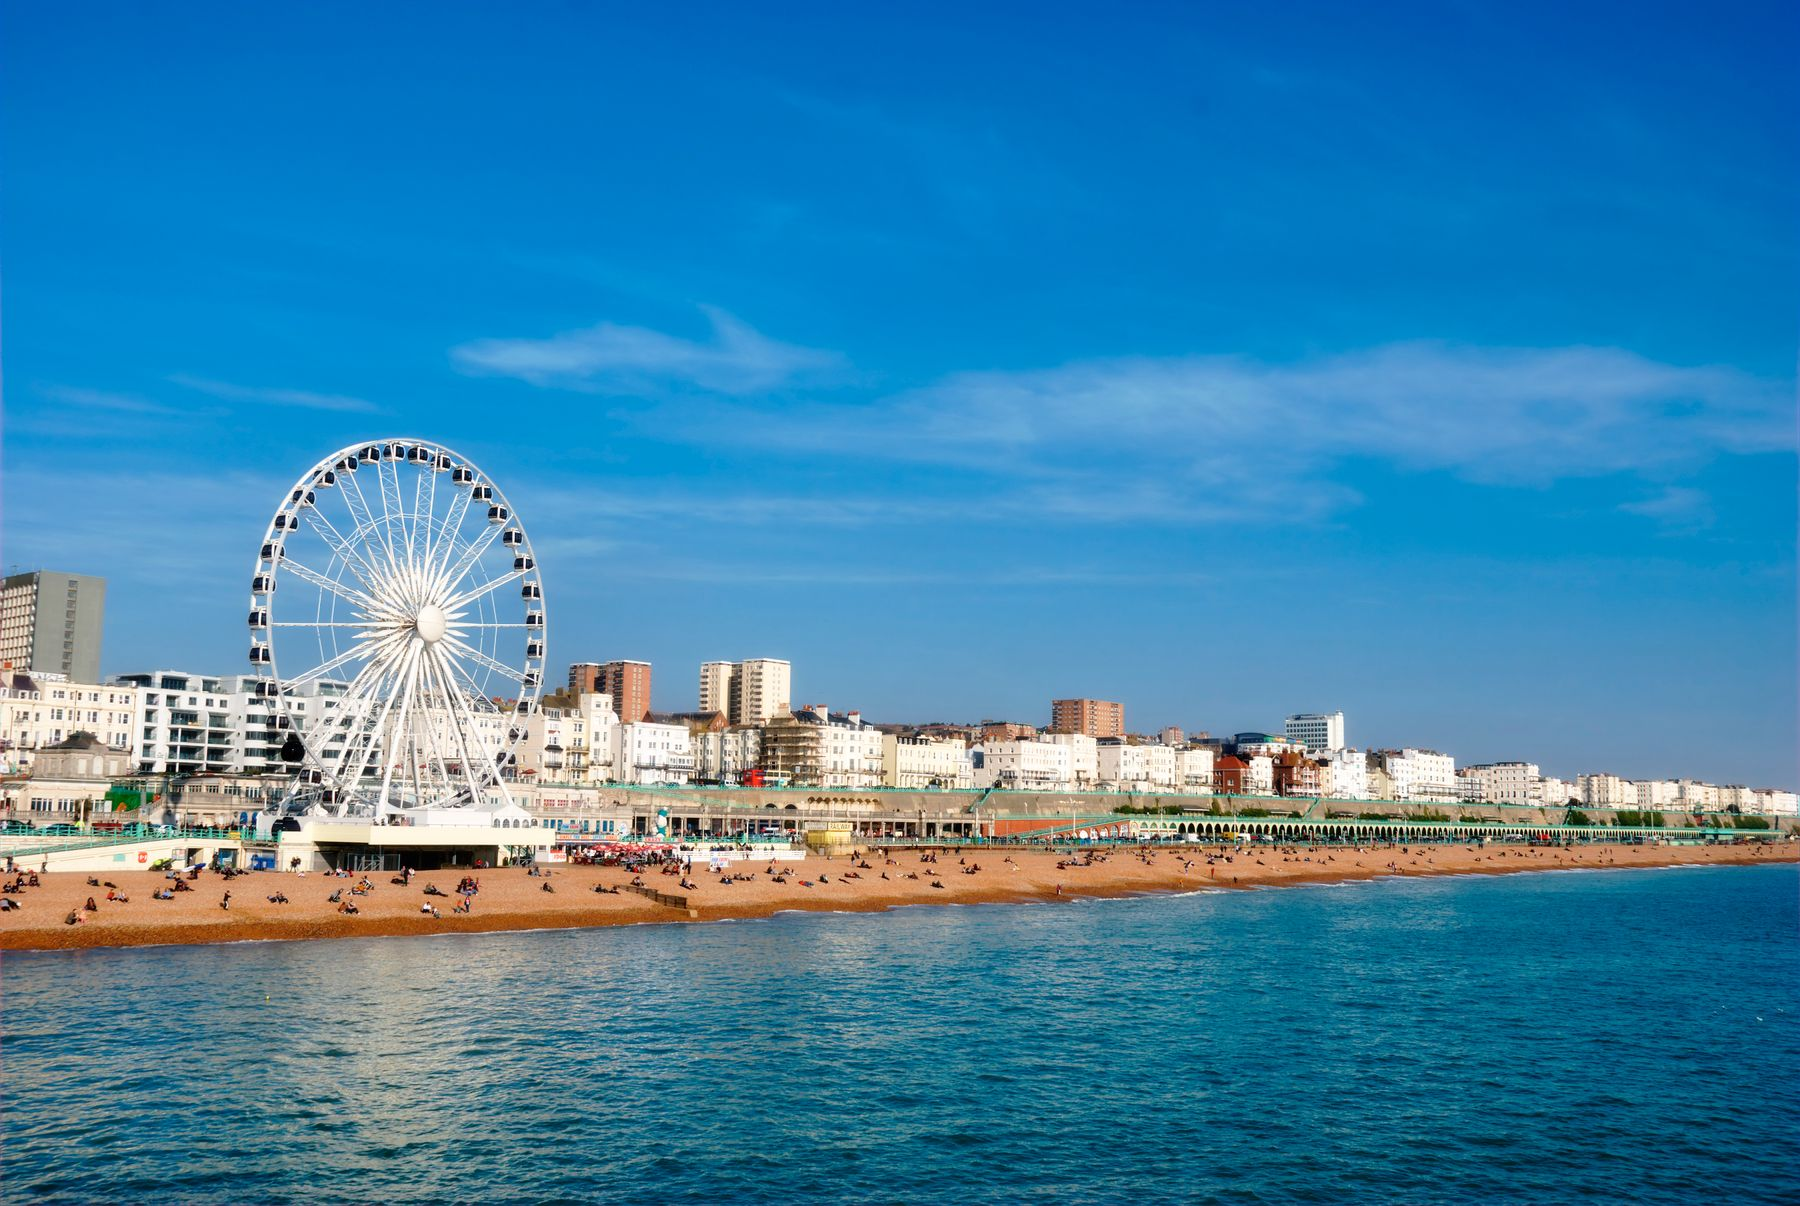 Picture shows Brighton, one of the best cities to visit in the UK, with Brighton seafront with its sandy beach, and the Brighton Wheel - the weather is sunny and the sky is blue.